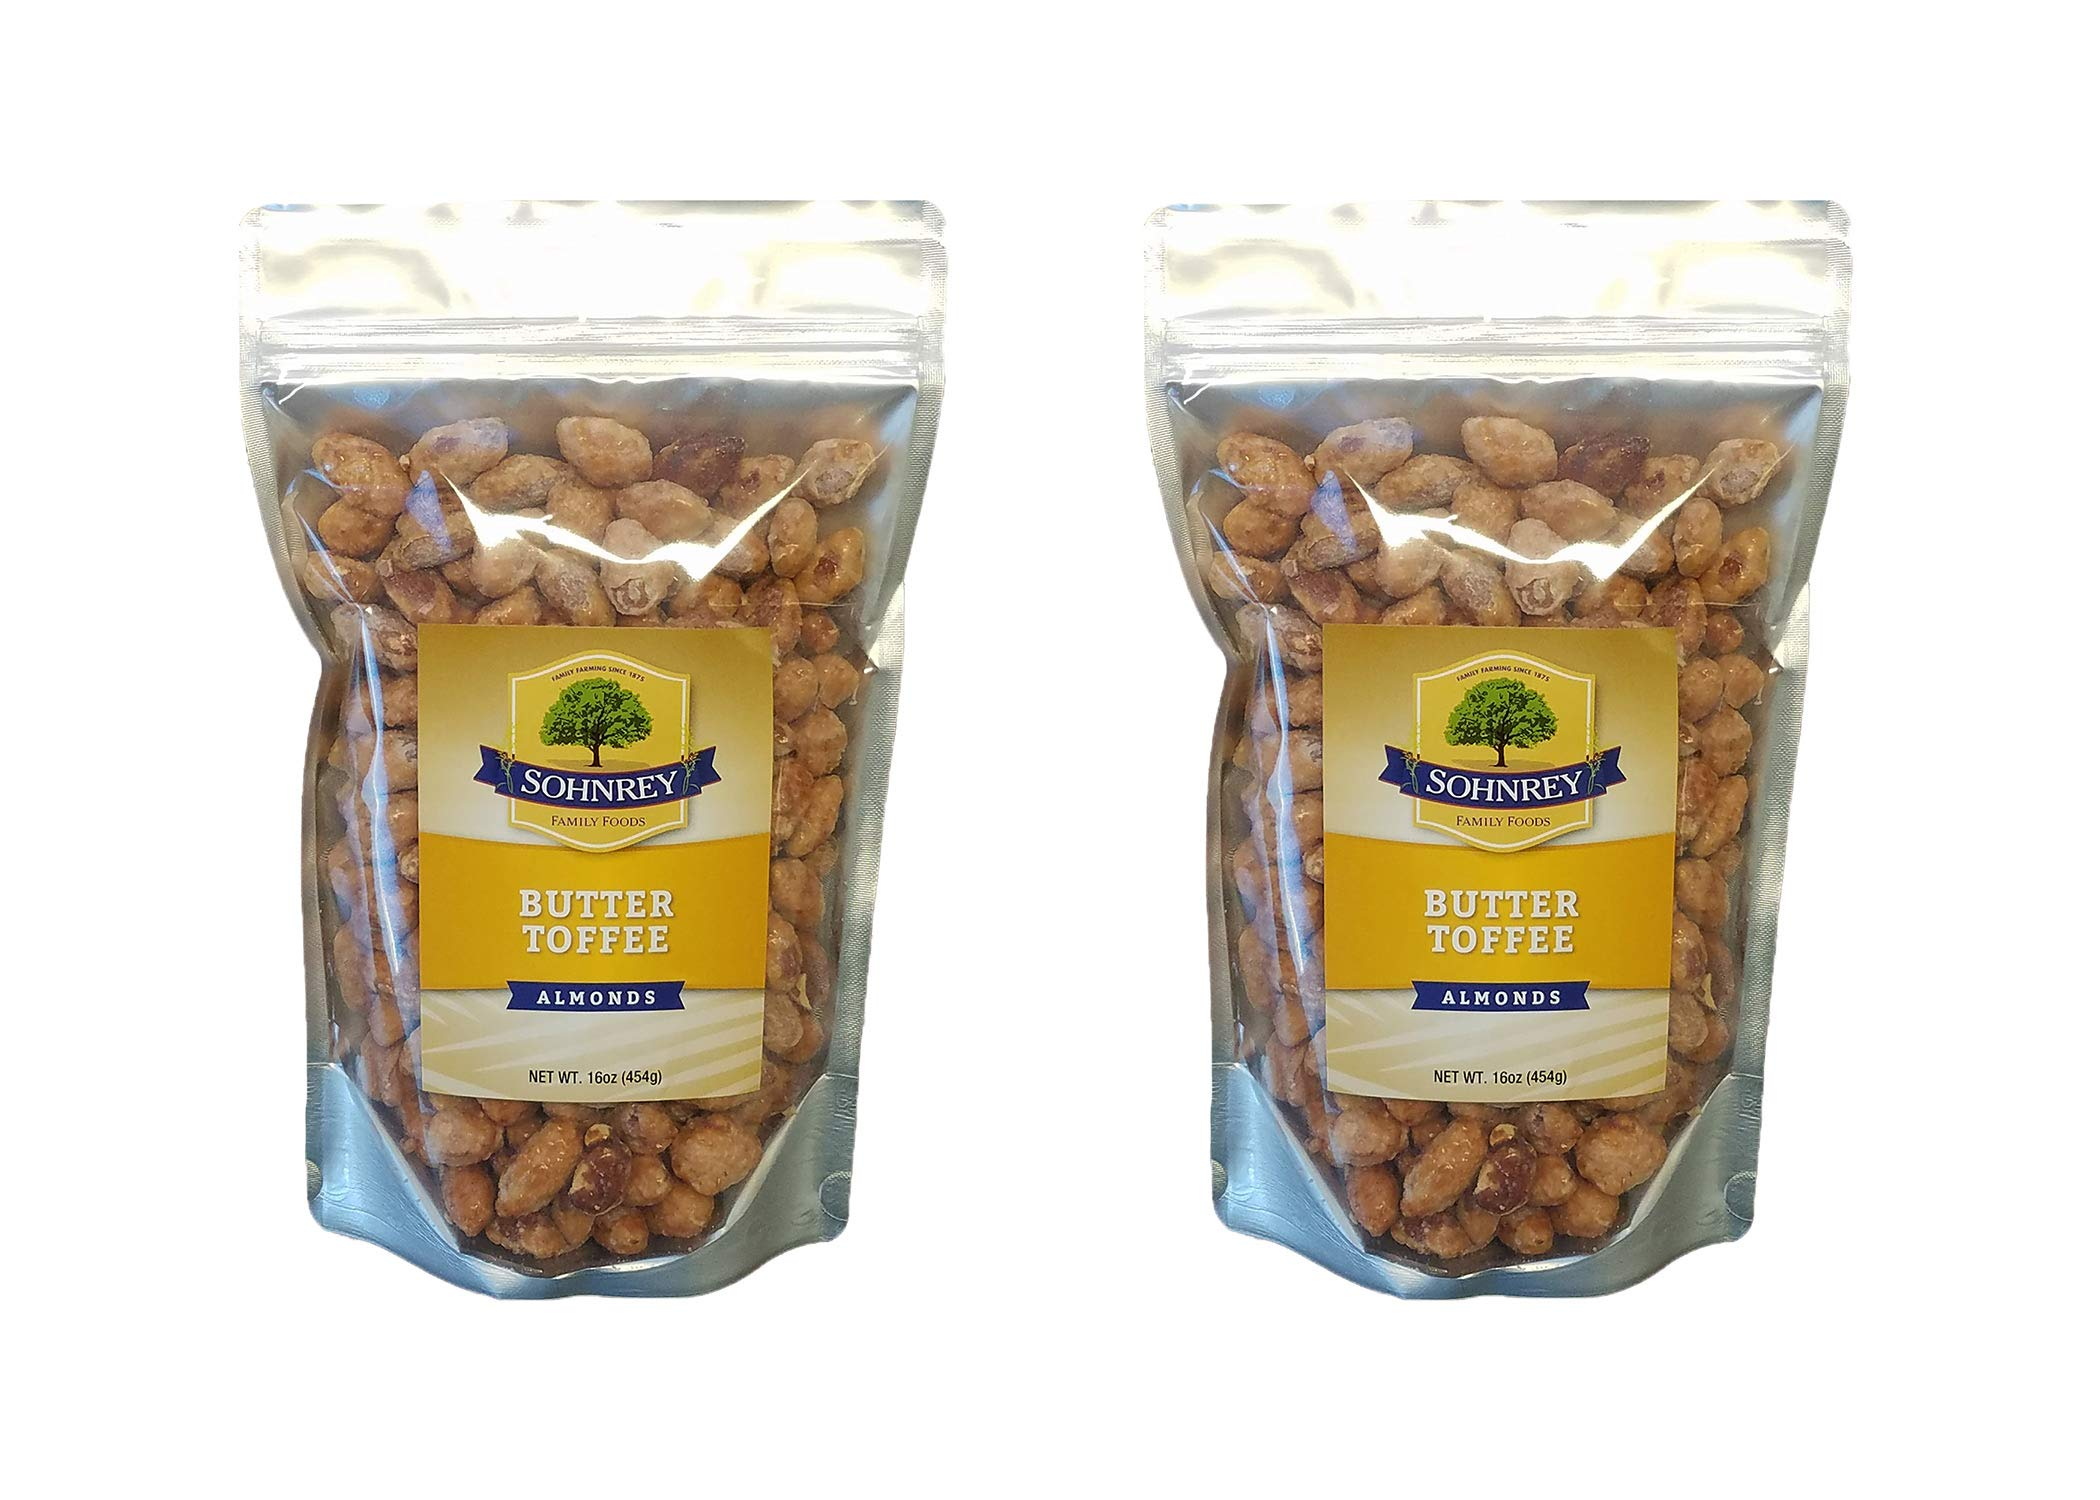 Butter Toffee Almonds Fresh Gourmet Sweet and Salty Crunch (16 oz) Resealable Bag from Sohnrey Family Foods (2-Pack (32 oz))